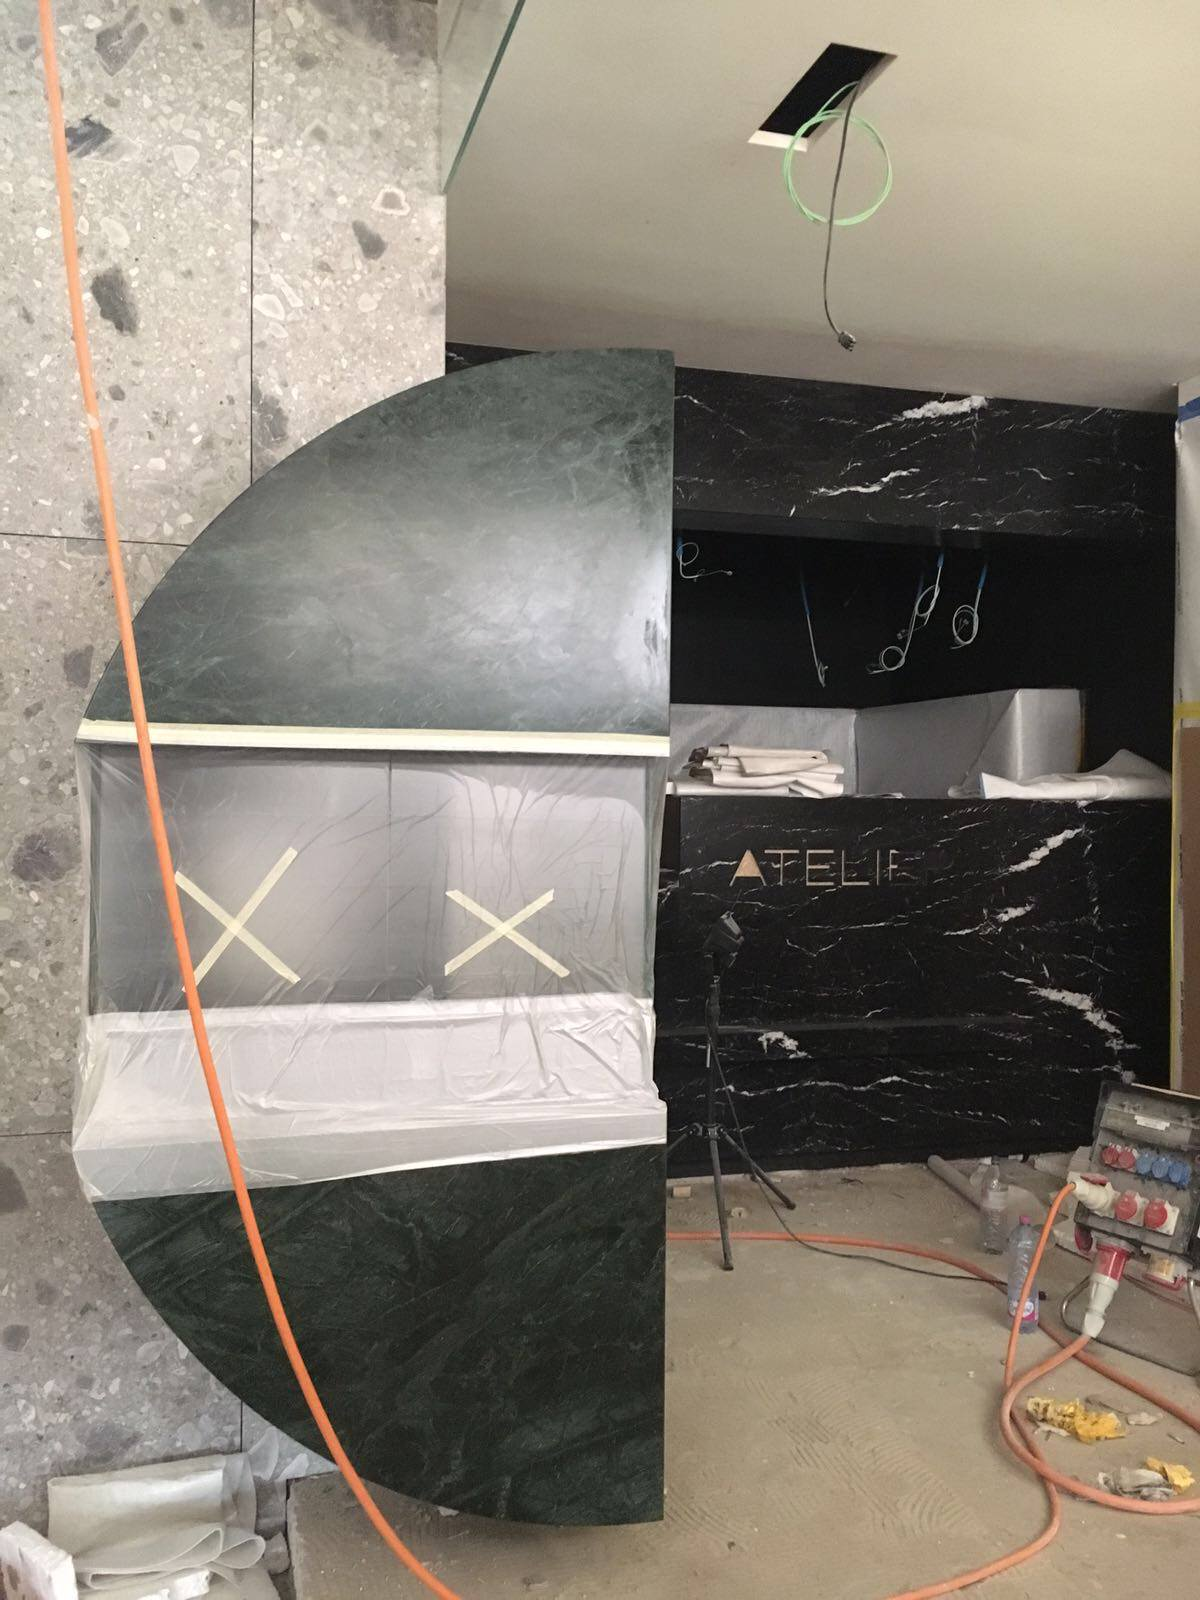 Innenarchitekt Interior Design Hotel Hotellerie Restaurant Retail: highlight vitrine made of darkgreen marble – Kurz Juwelery Boutique Bahnhofstrasse Zürich under construction